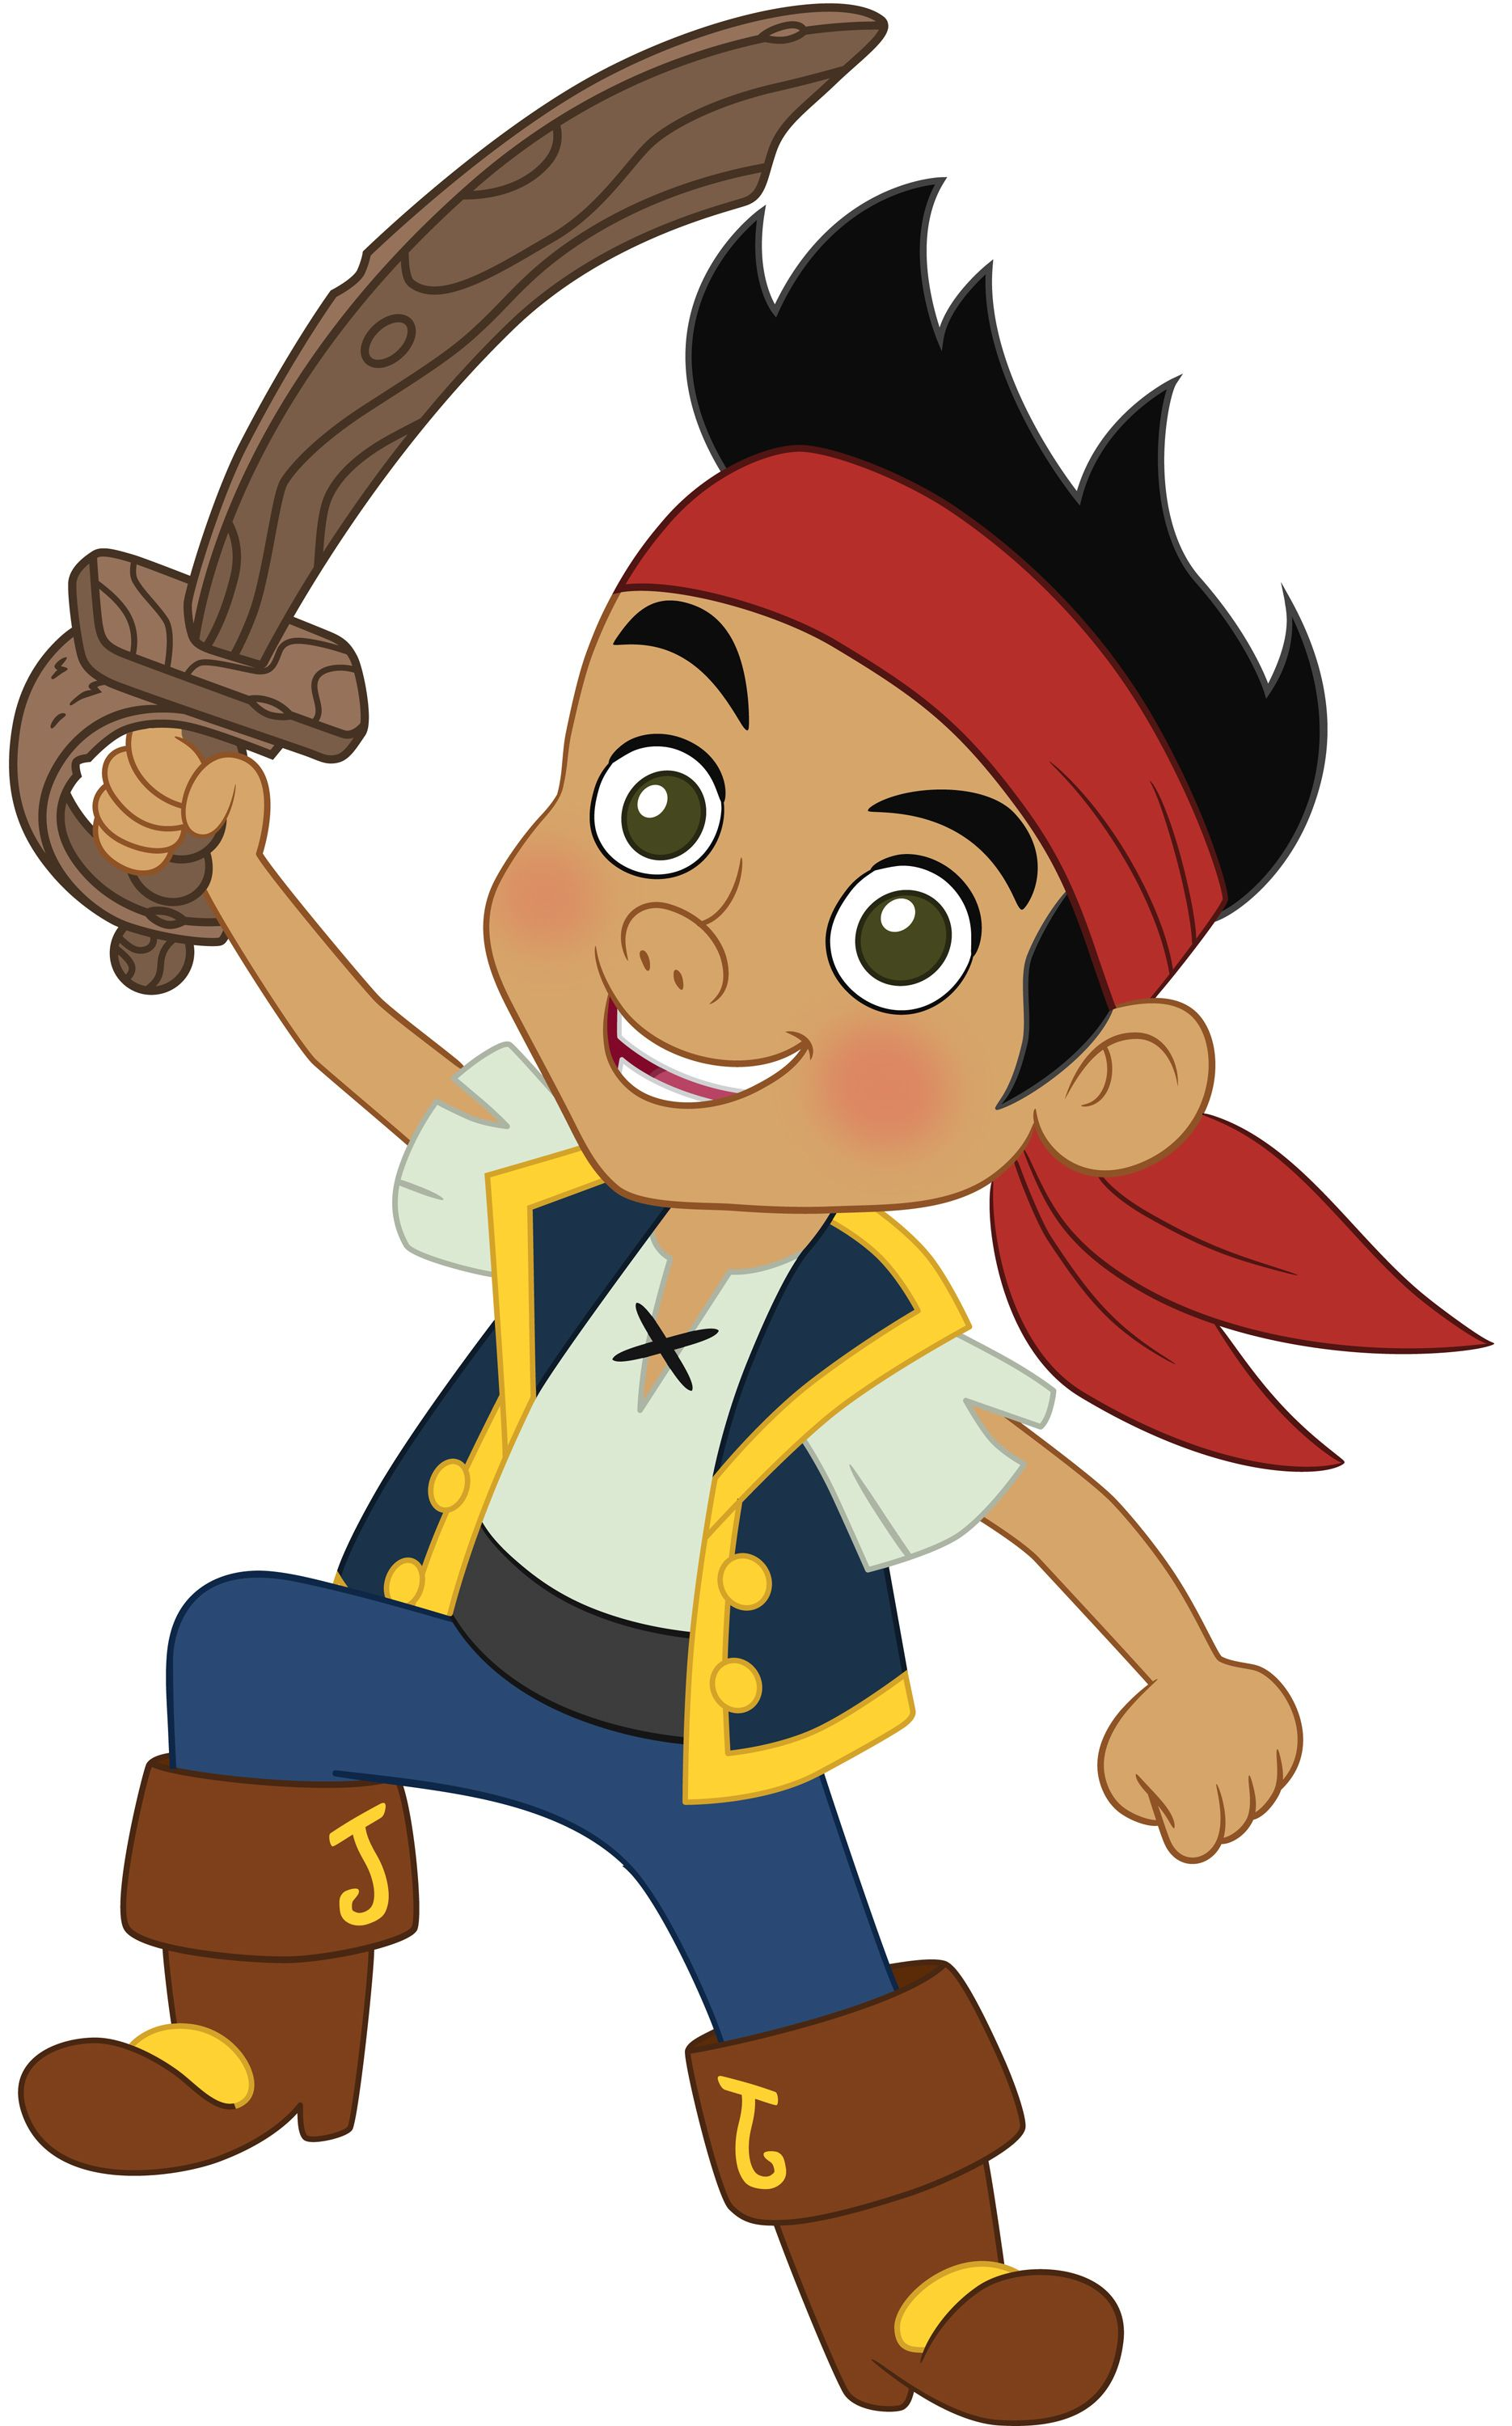 Pirate clipart. Jake and the never